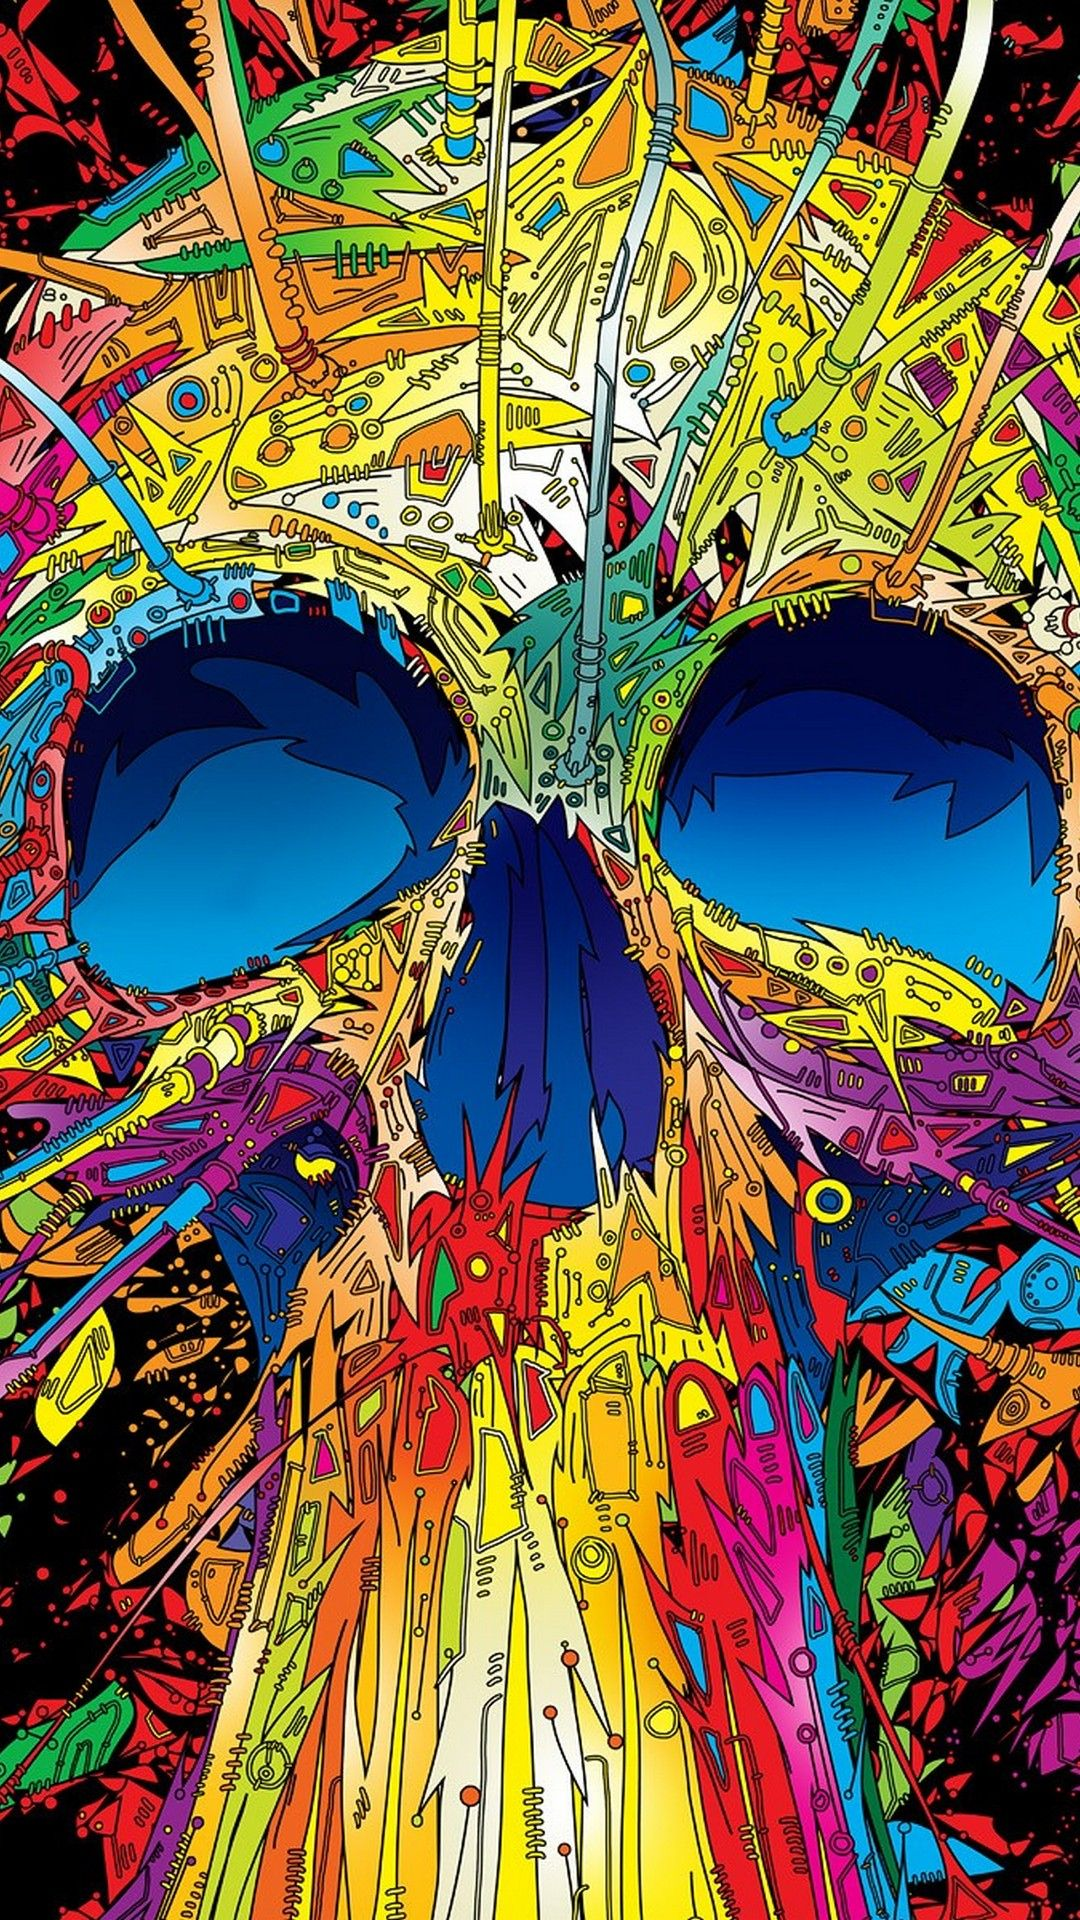 Trippy Hd Wallpaper Android In 2020 Trippy Wallpaper Art Wallpaper Iphone Best Iphone Wallpapers